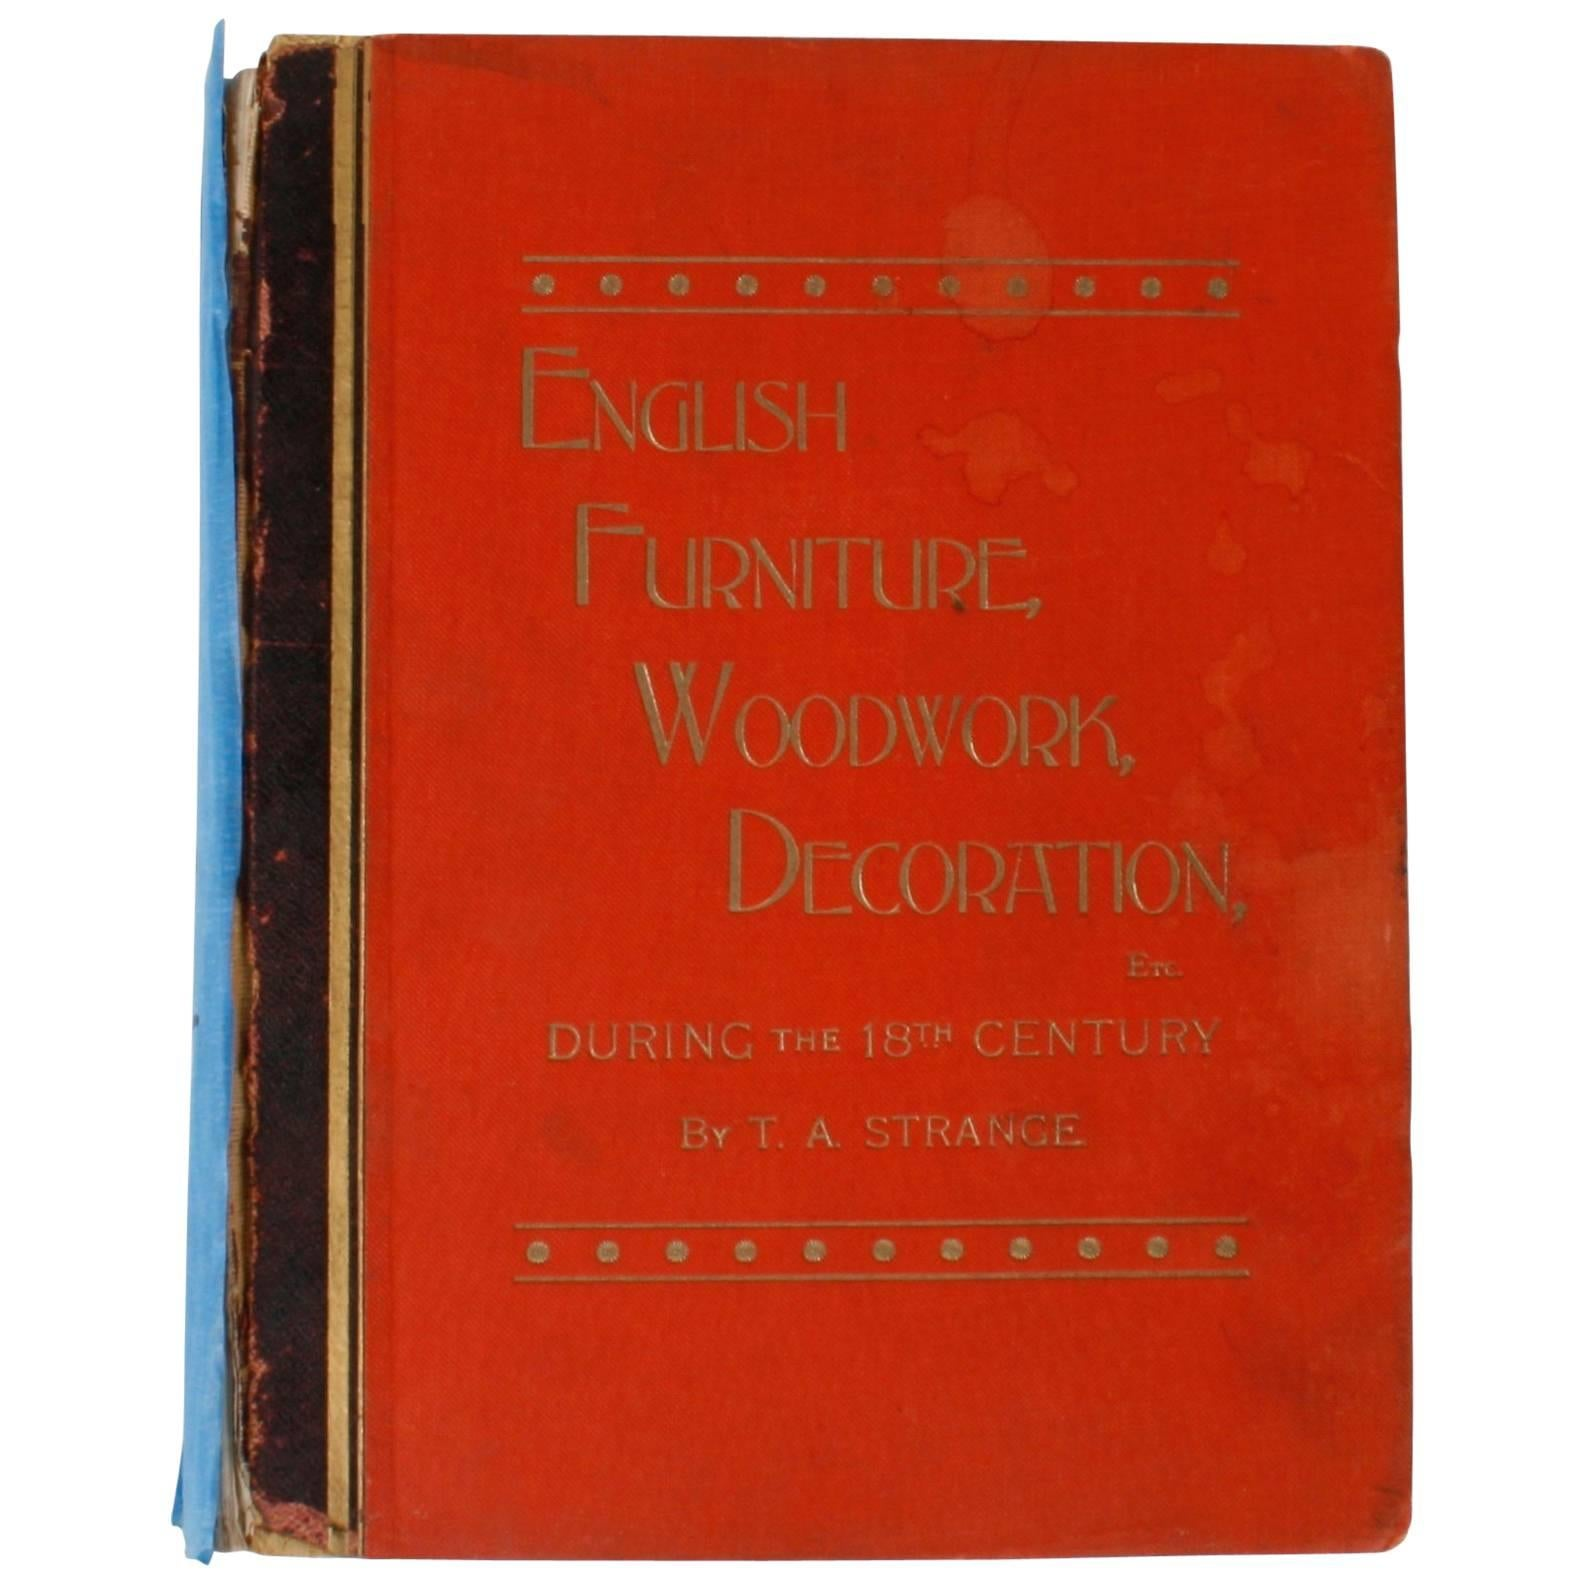 English Furniture, Woodwork, Decoration, During the 18th c, 1st Ed